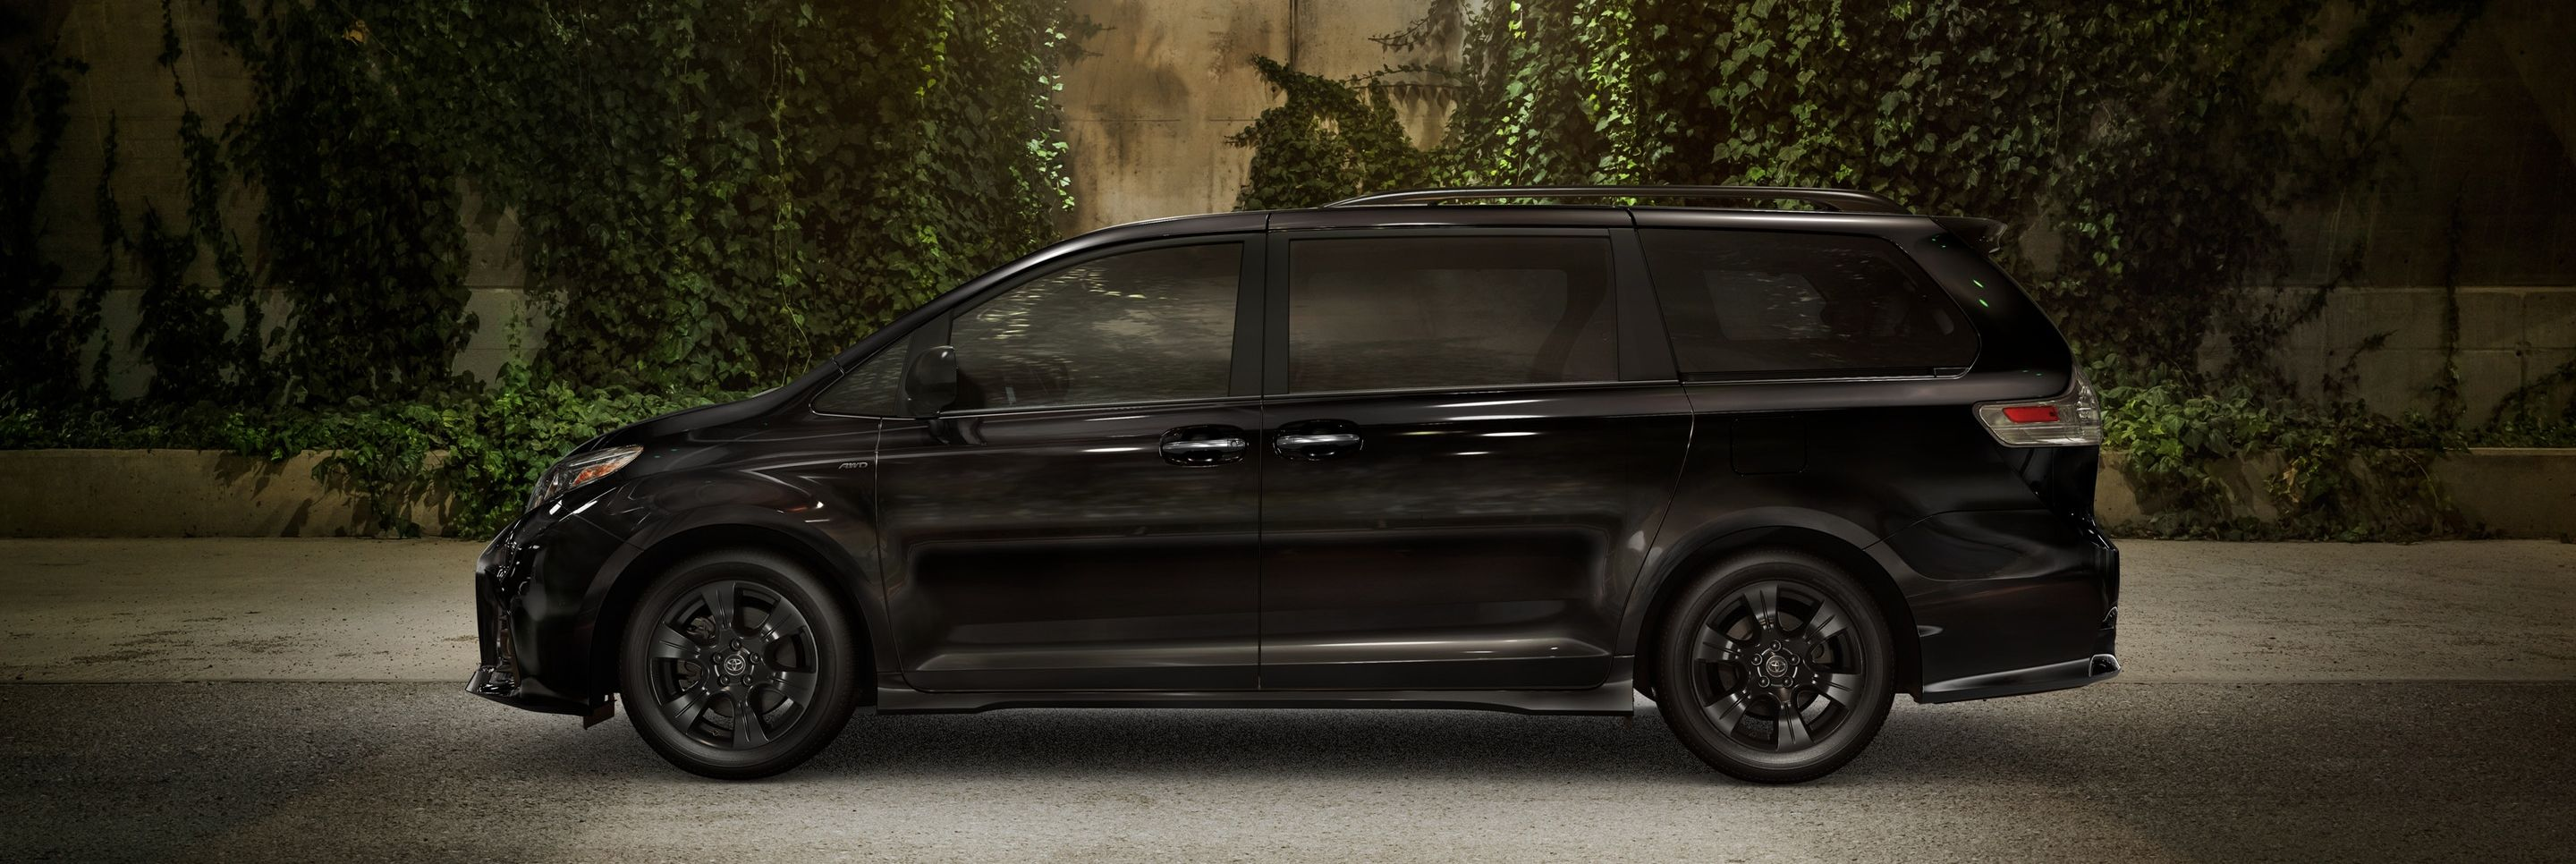 2020 Toyota Sienna for Sale near West Des Moines, IA